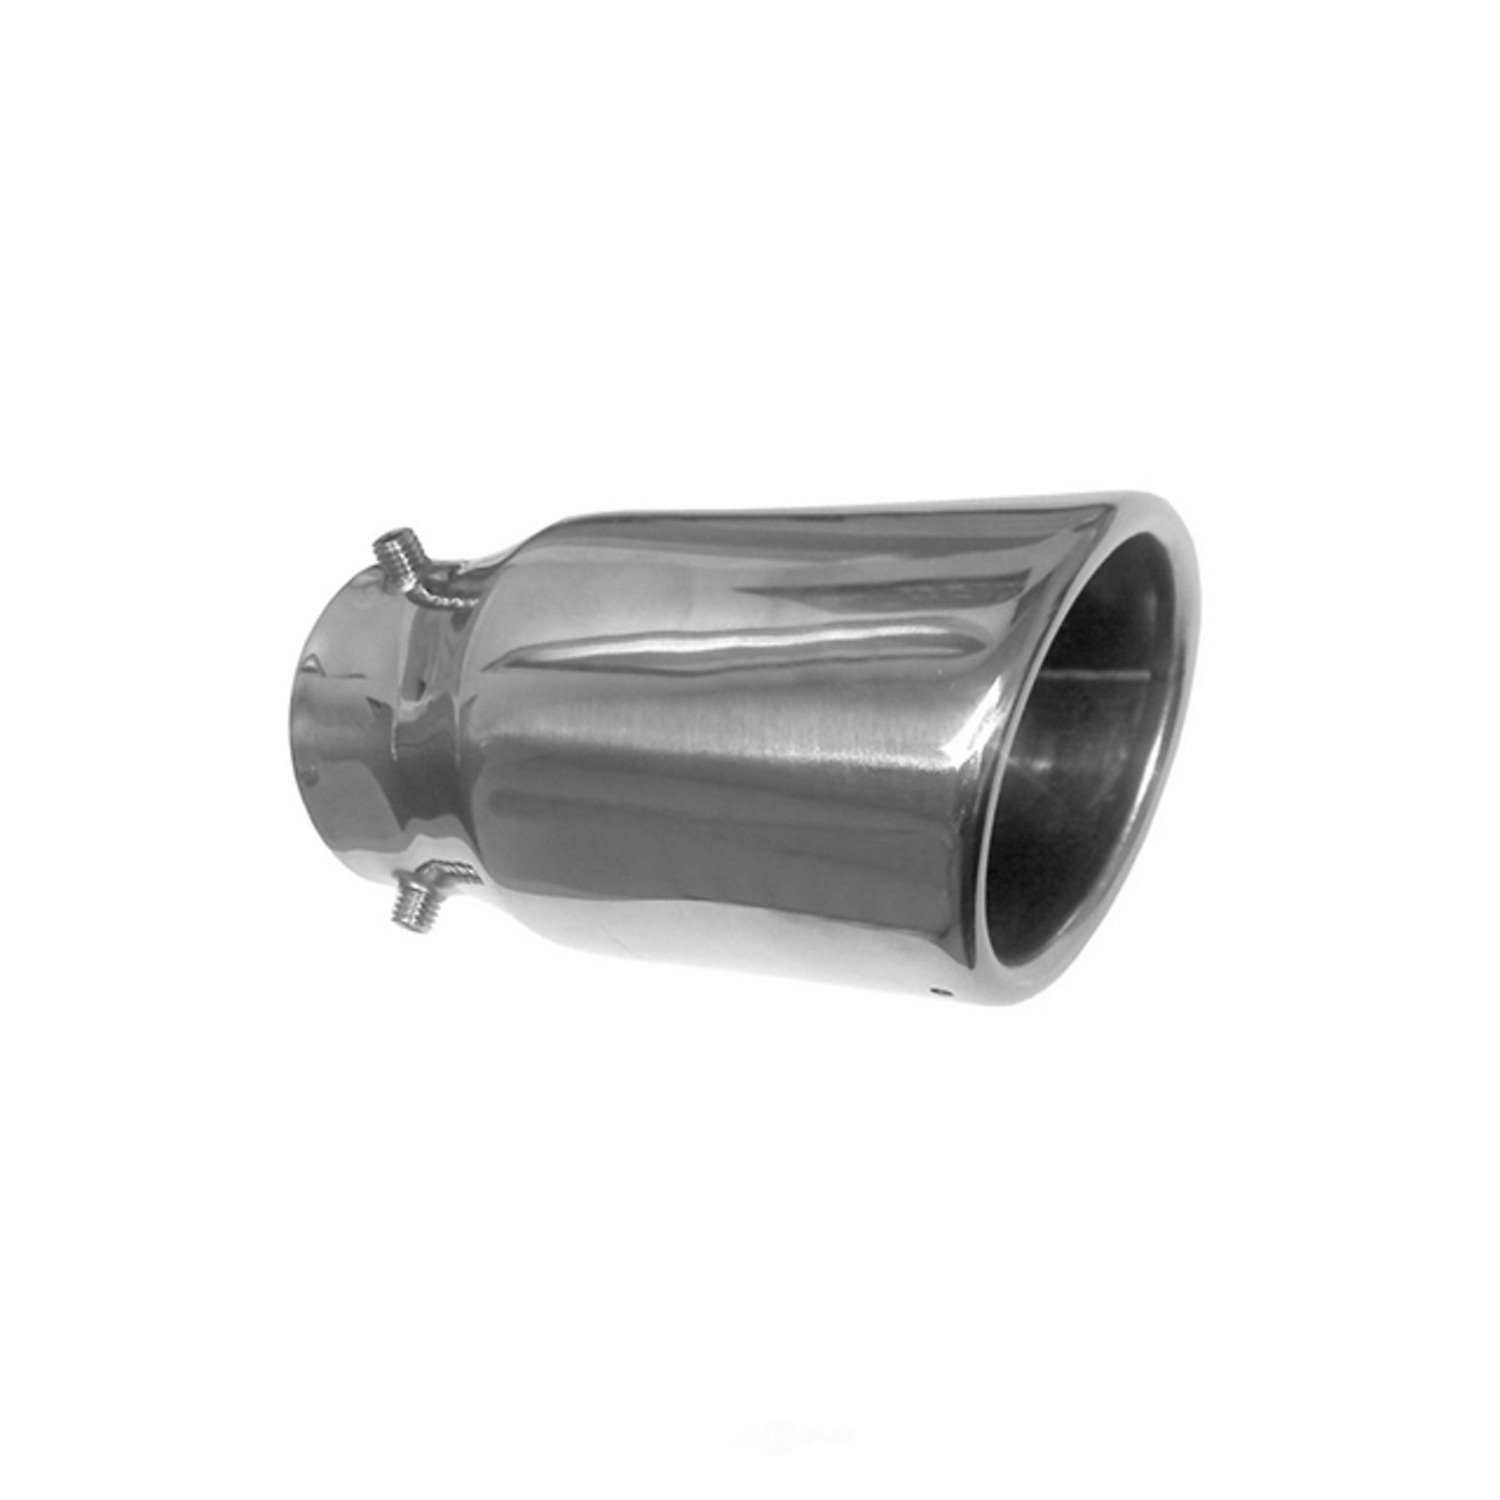 AP EXHAUST W/FEDERAL CONVERTER - Exhaust Tail Pipe Tip (Left) - APF ST1253S